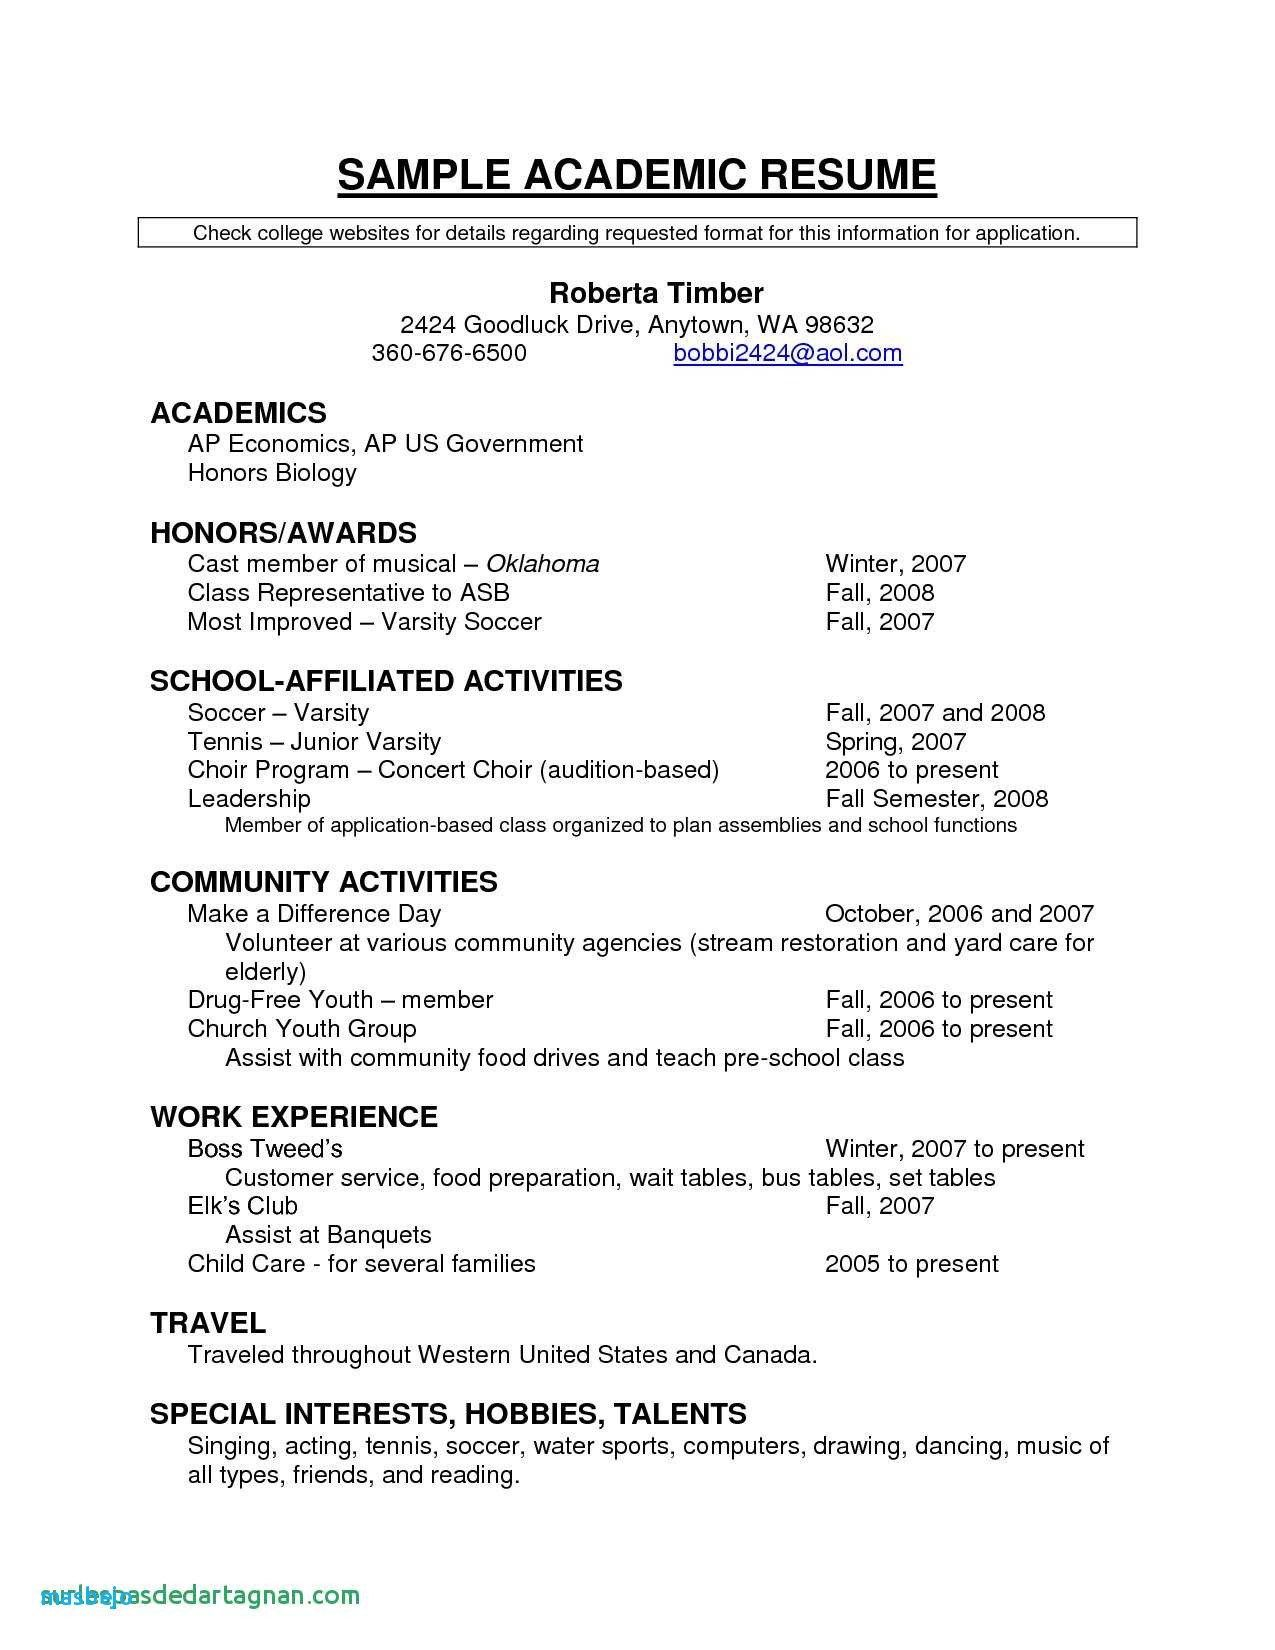 Free Travel Magazines Travel Agent Cover Letter Sample Best Activities Resume Template